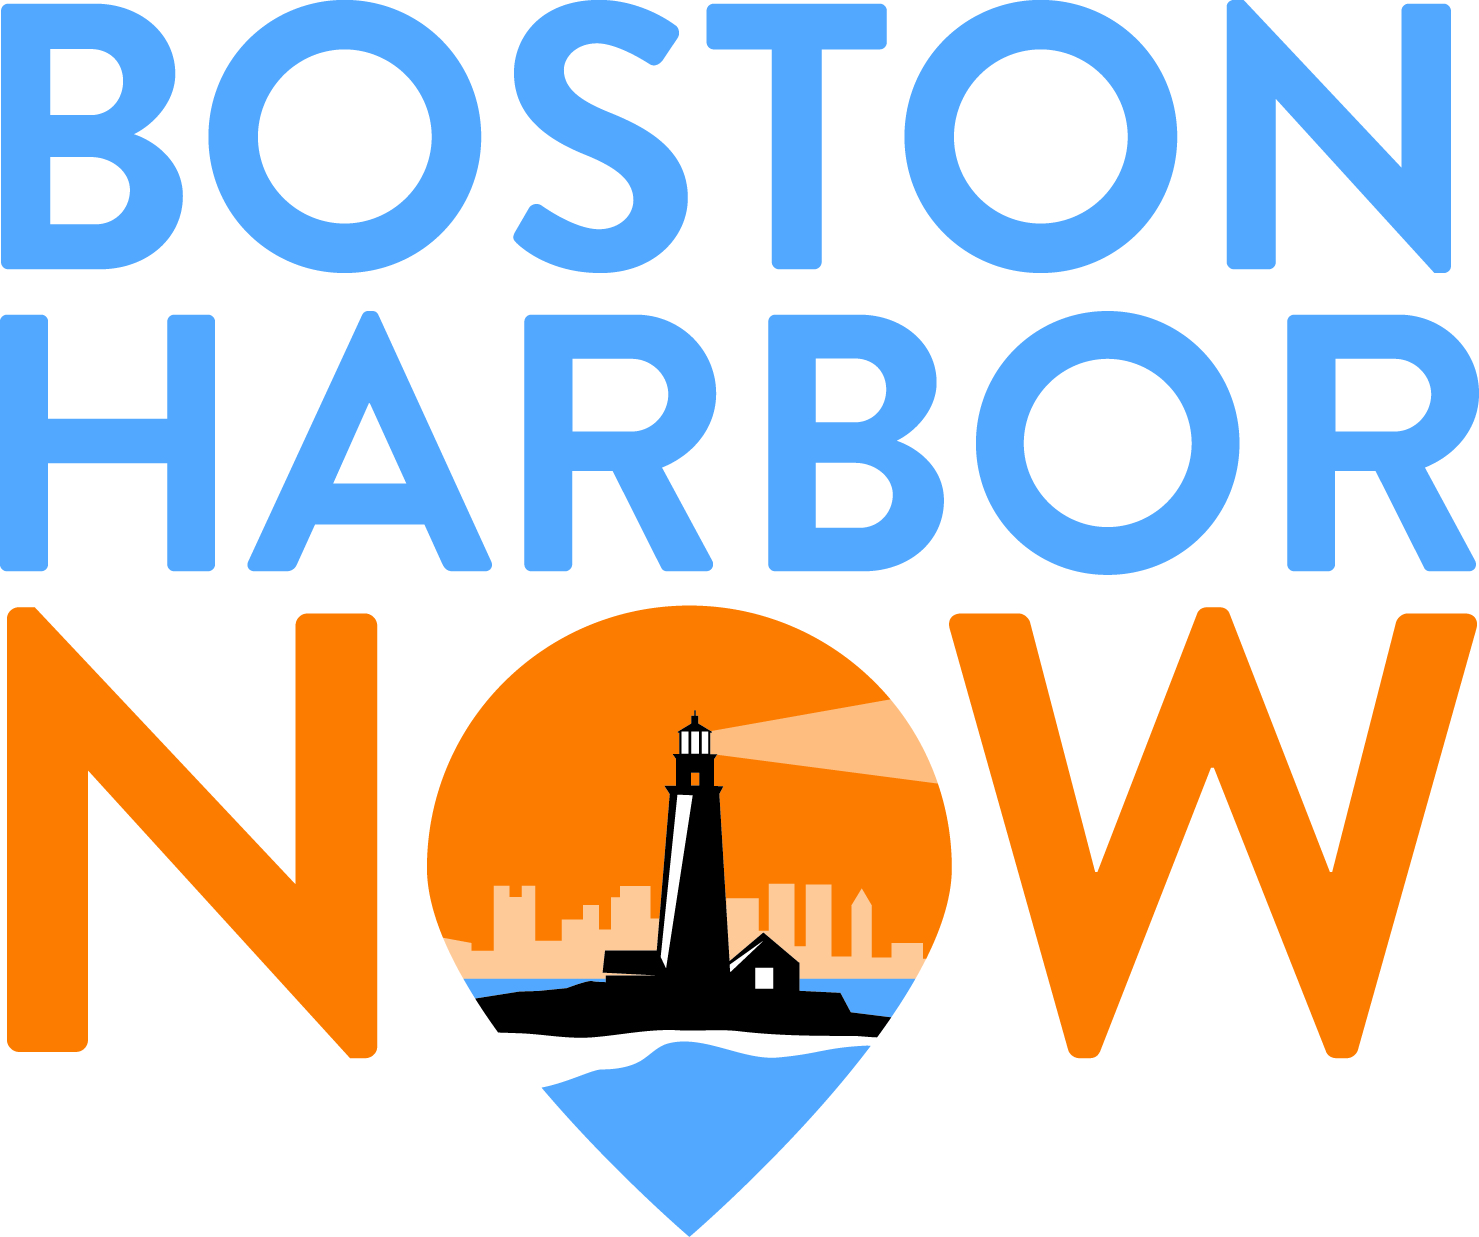 Enjoy a Sunset Harbor Cruise with AARP Massachusetts and Boston Harbor Now!